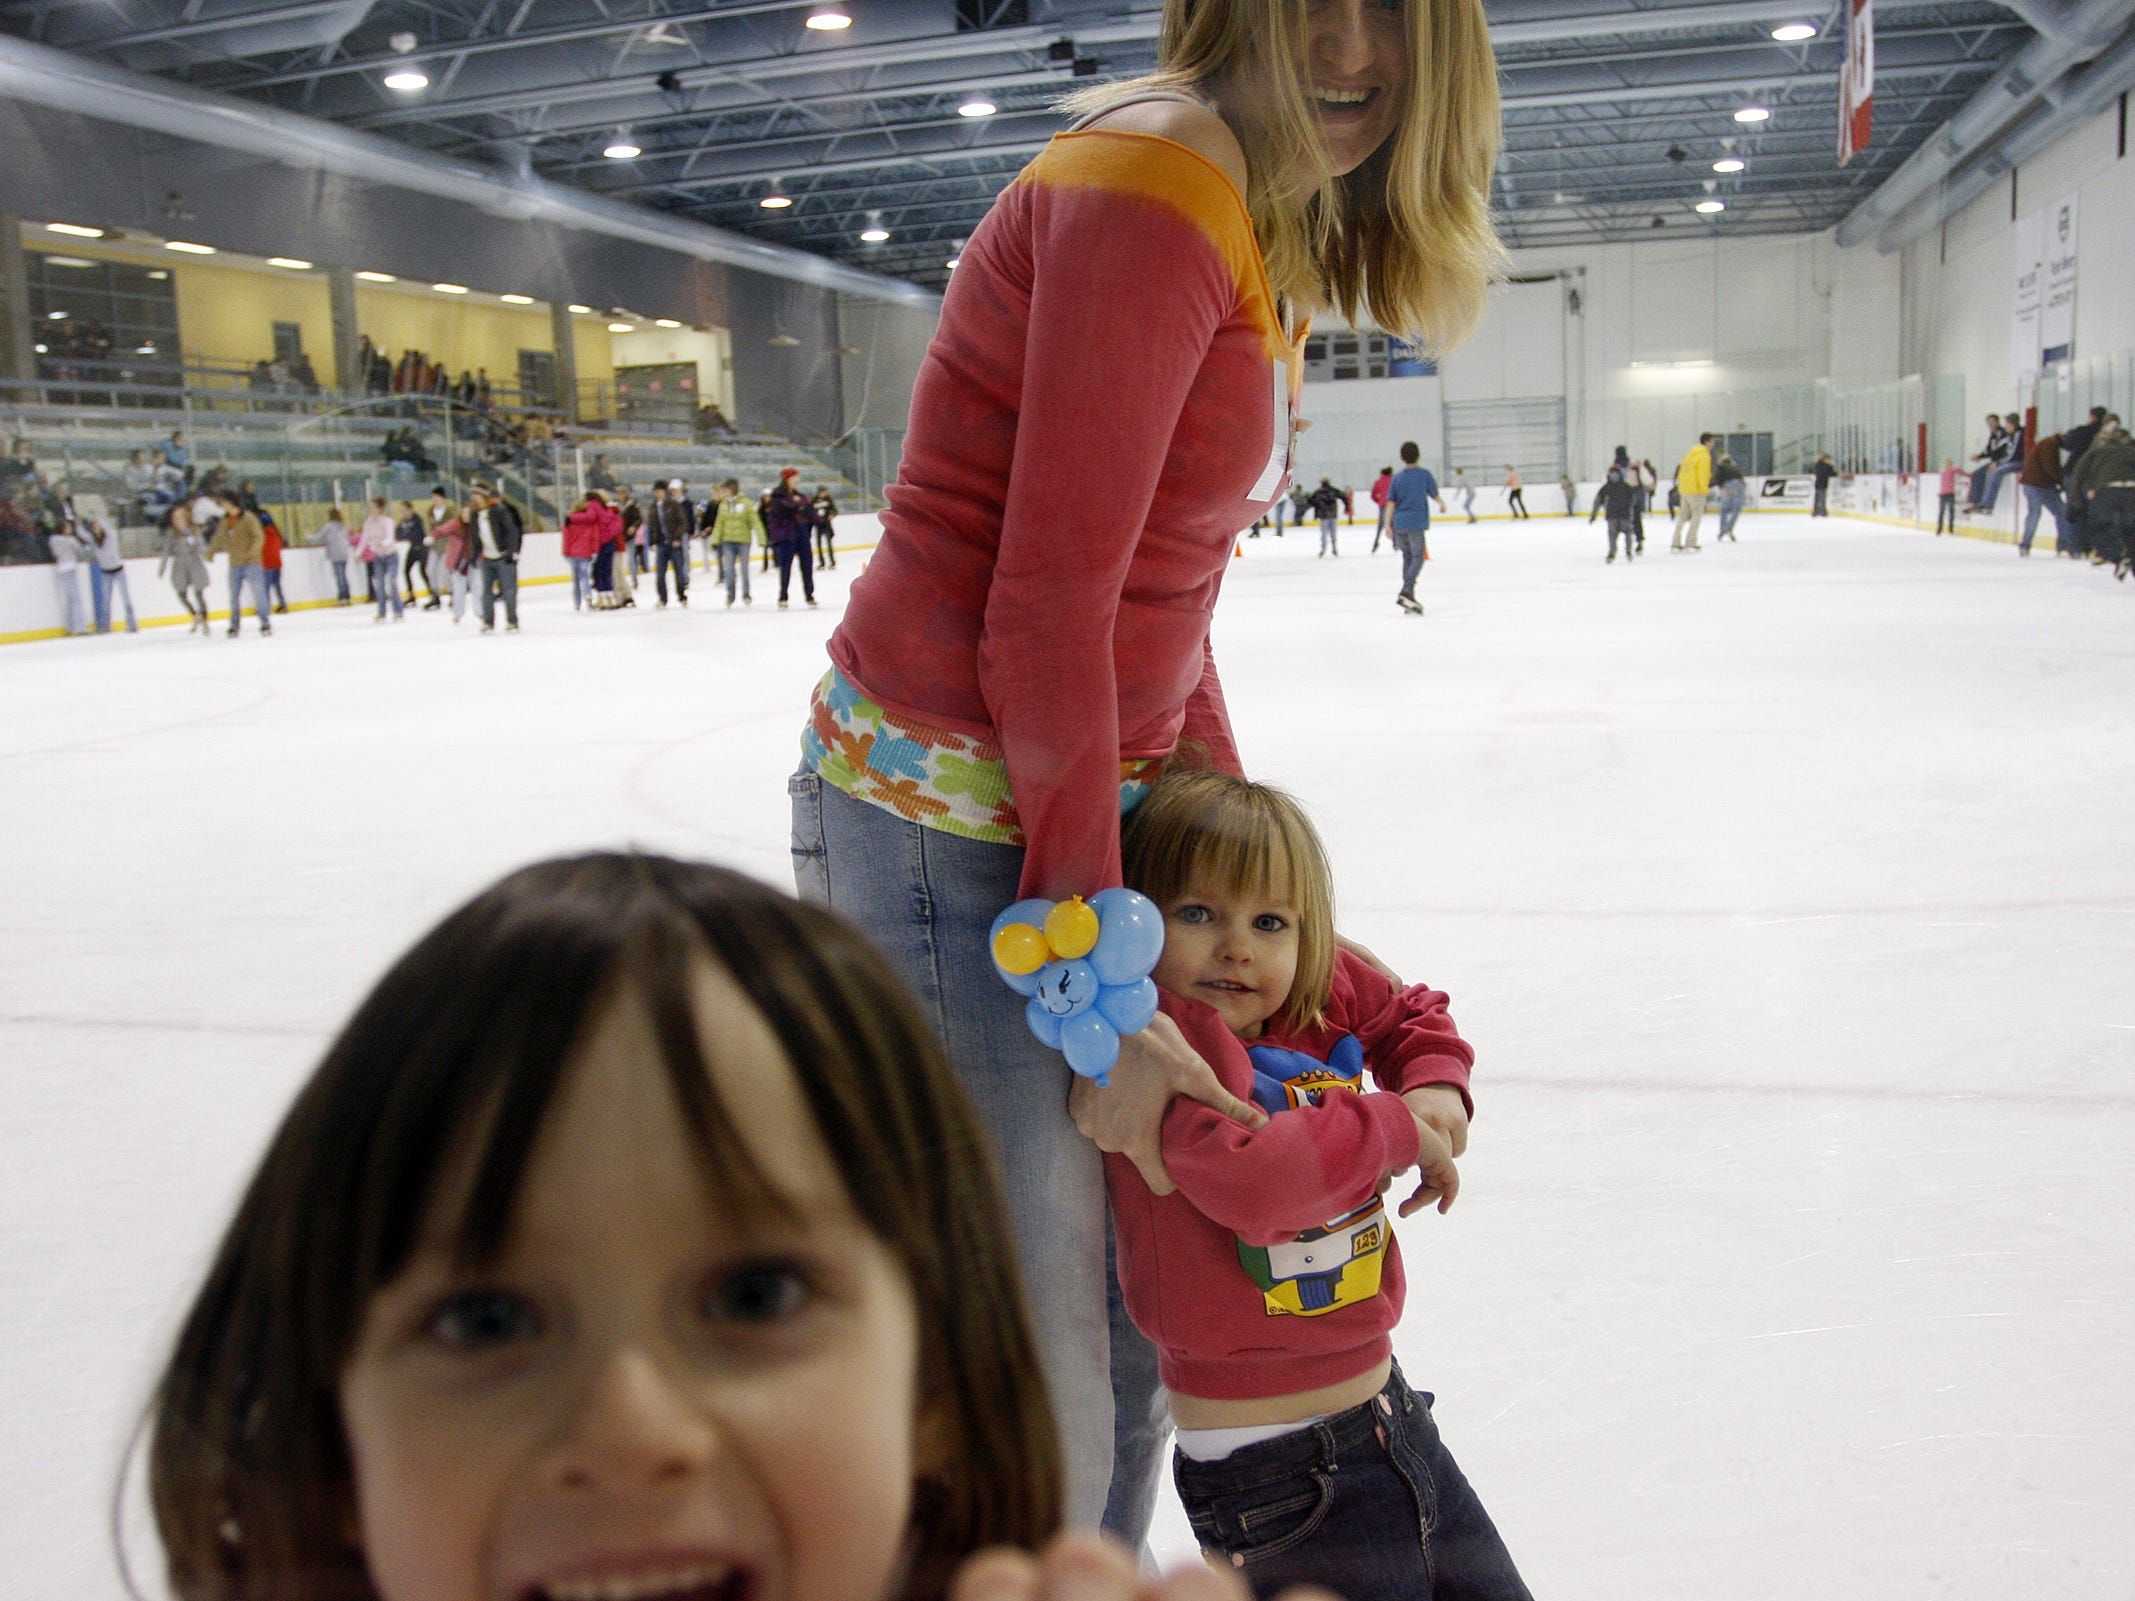 Jessica Humpan, of Springfield, top center, and her daughters, Ray Ray Humpan, right lower center, and Soya Humpan, 4, bottom left, enjoy a session of ice skating during the Open Ice Skate event of the Spotlight First Night Springfield 2009 presented by Hollywood Theaters at Mediacom Ice Park in Springfield, Missouri, Thursday, January 1, 2008.